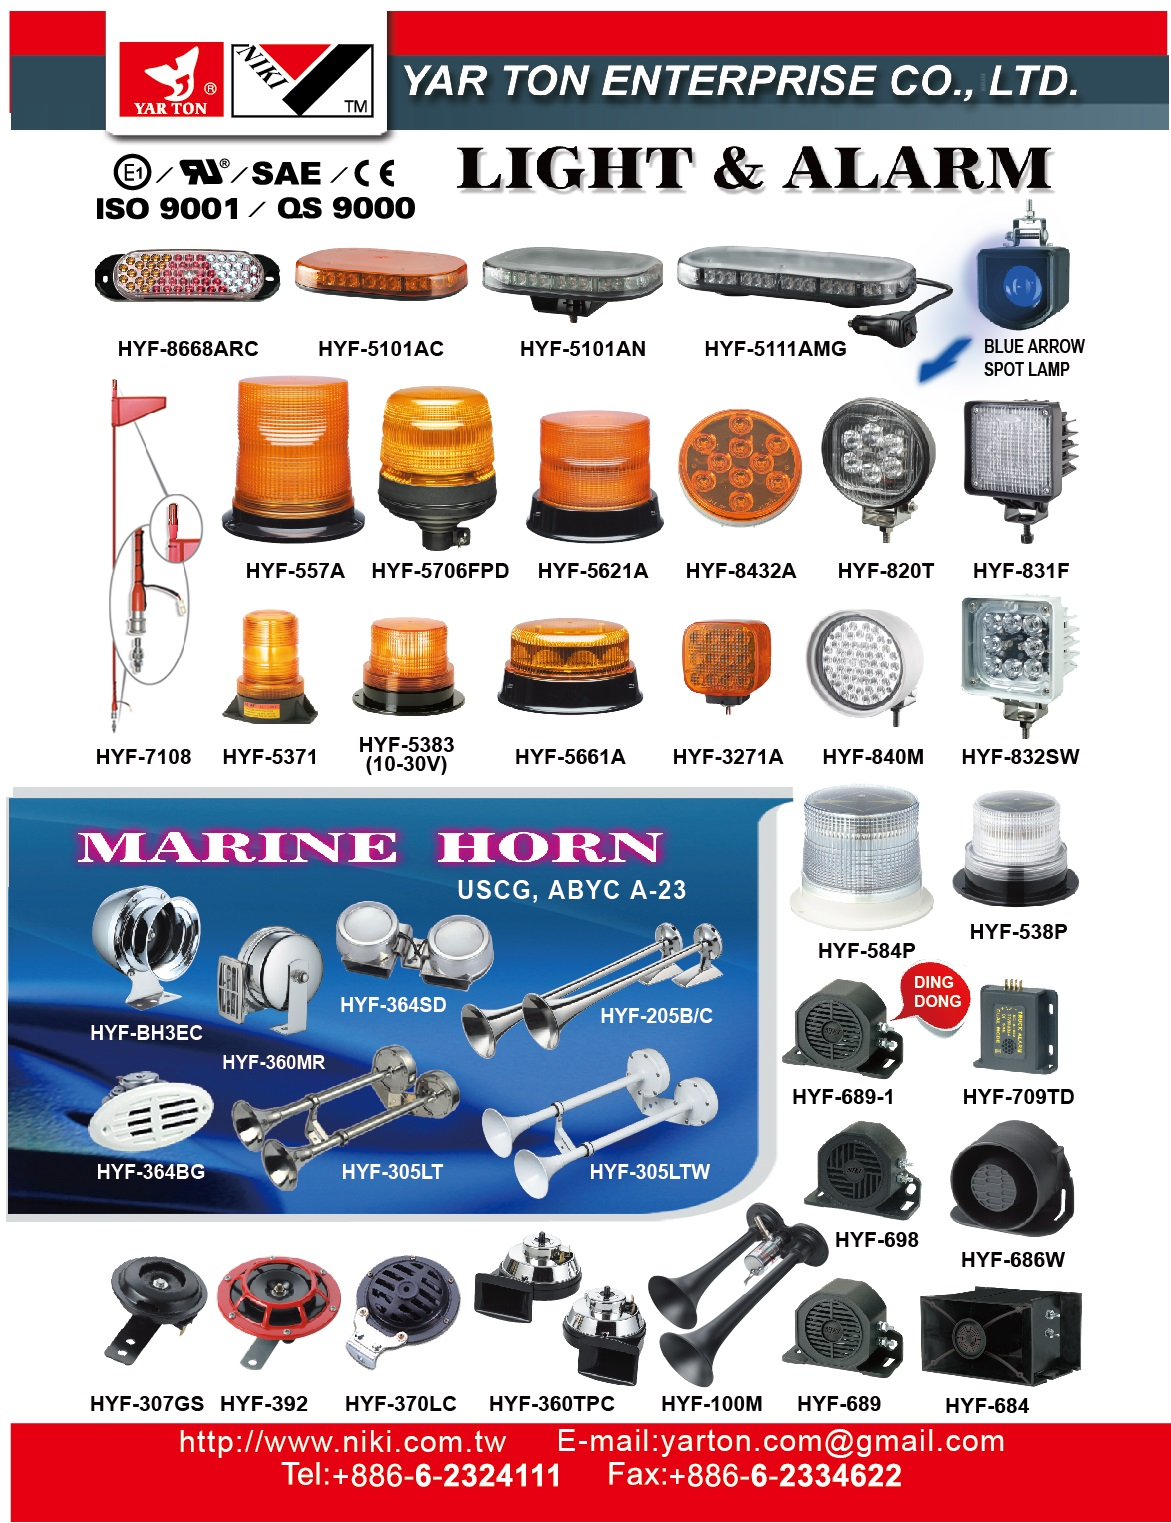 Lights & Alarm, Marine Horn DM